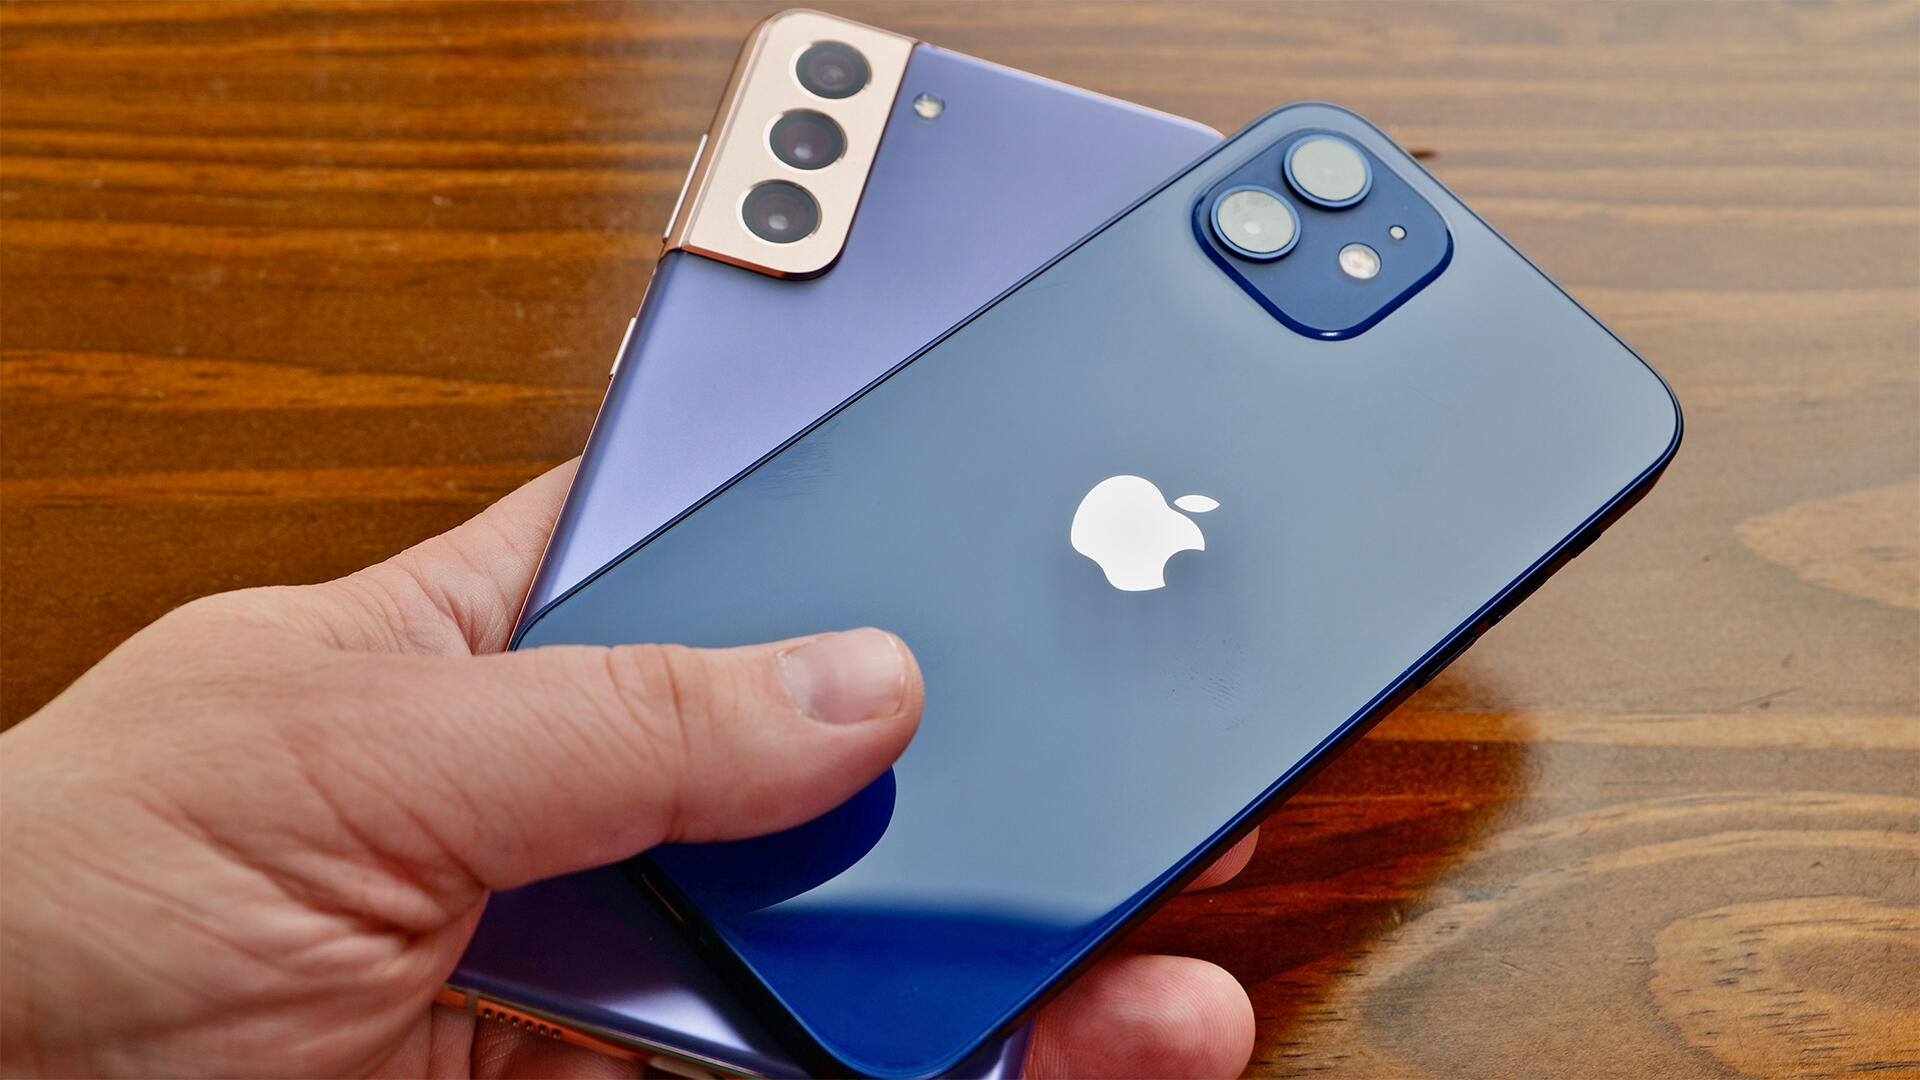 Video: Camera comparison: Galaxy S21 vs. iPhone 12